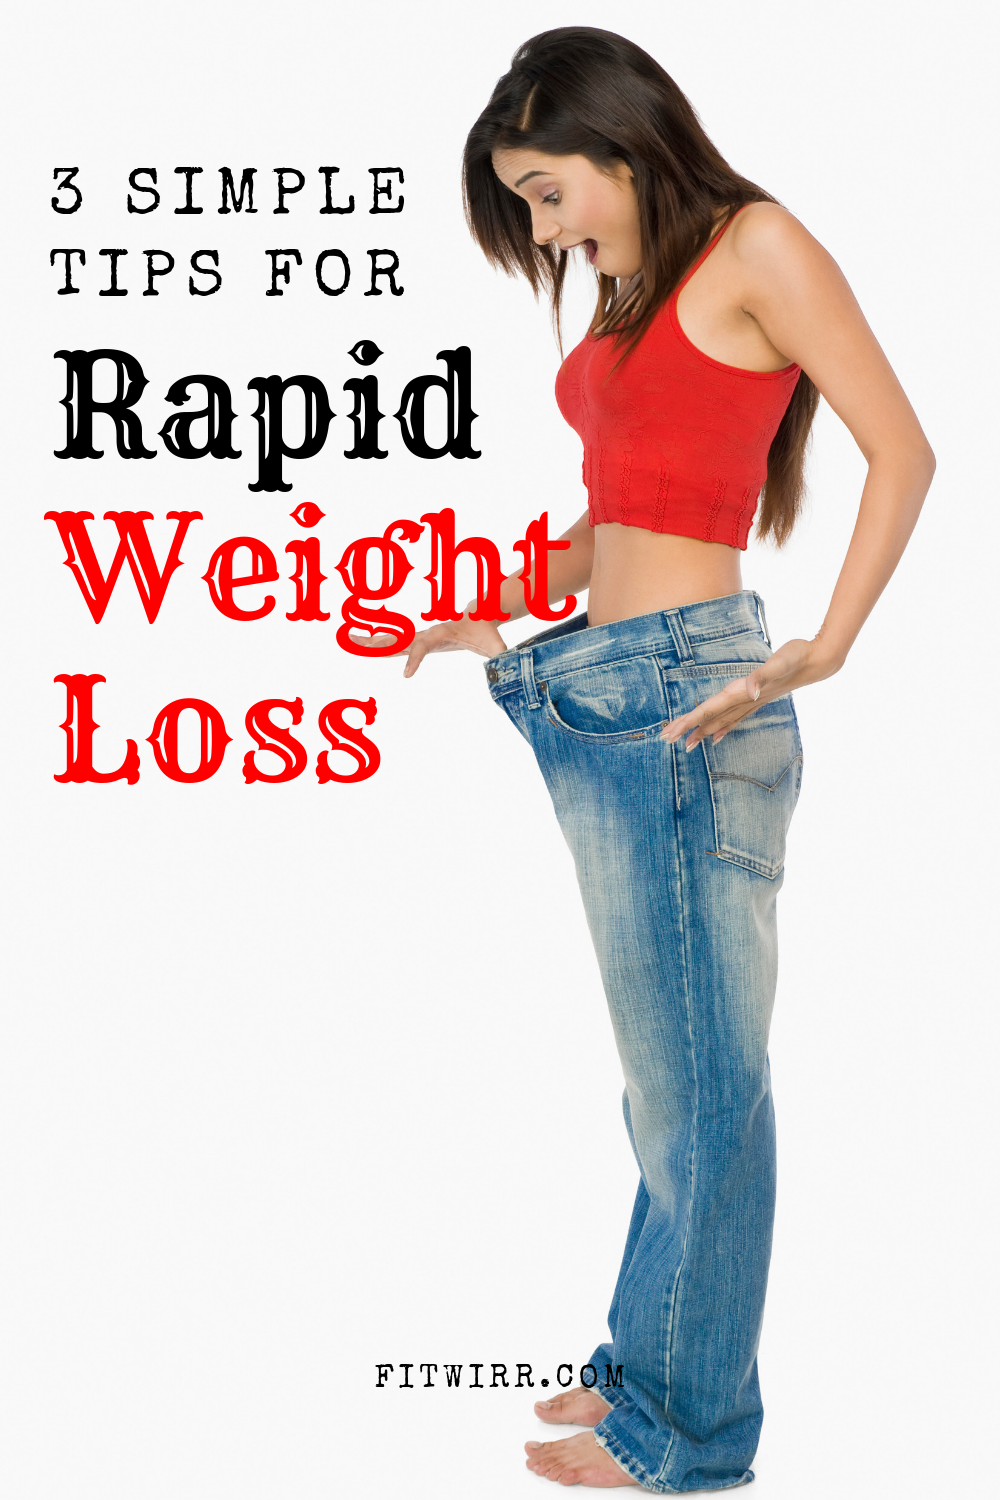 How to Lose Weight Quickly: 3 Simple Weight Loss Tips That Work - Fitwirr